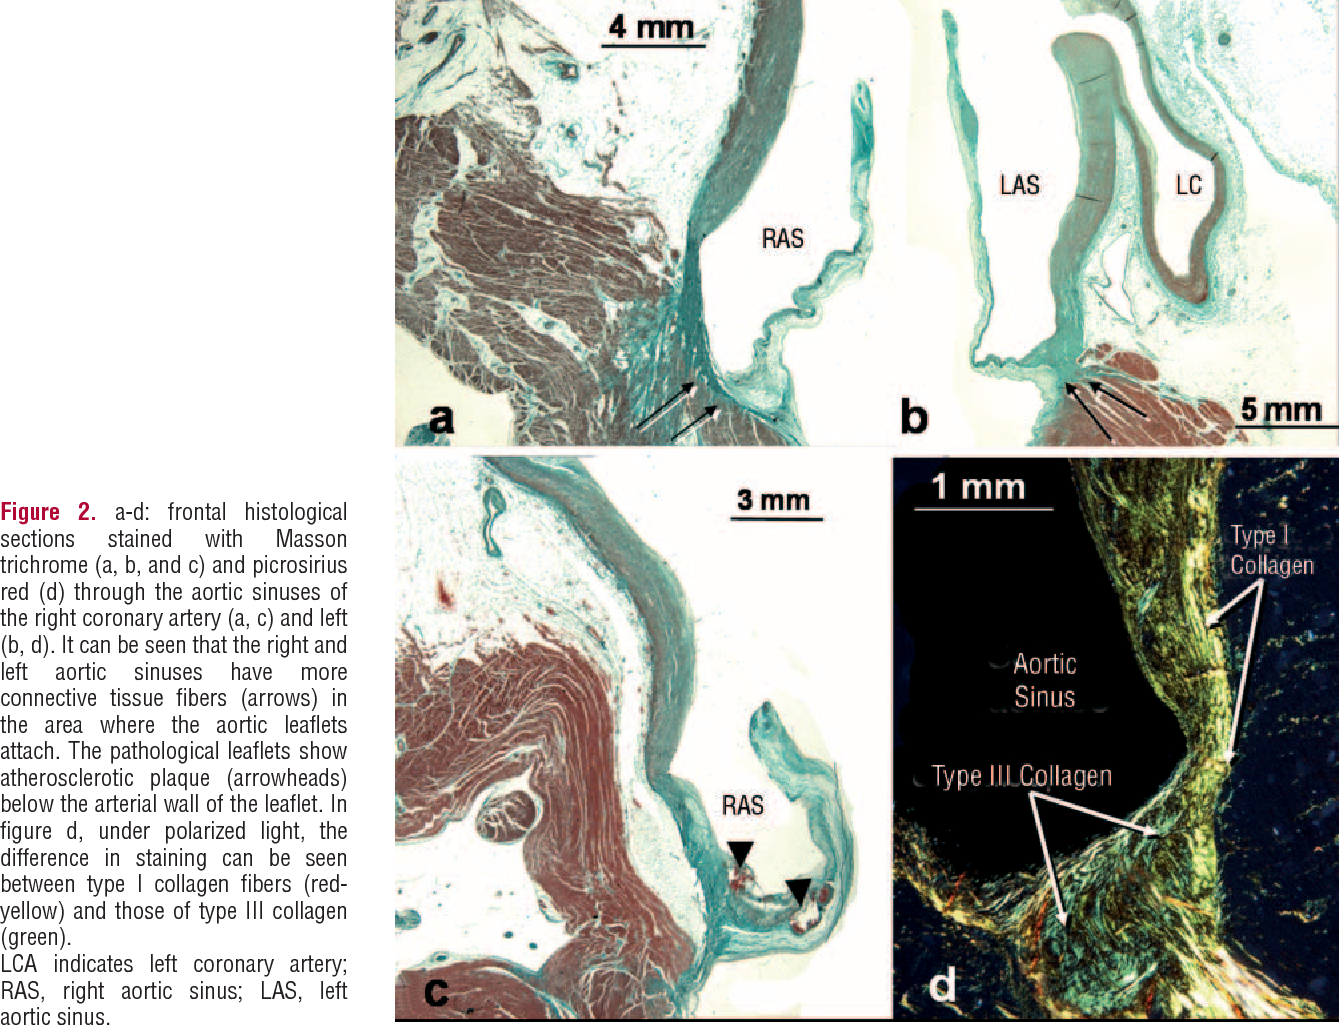 Figure 2. a-d: frontal histological sections stained with Masson trichrome (a, b, and c) and picrosirius red (d) through the aortic sinuses of the right coronary artery (a, c) and left (b, d). It can be seen that the right and left aortic sinuses have more connective tissue fibers (arrows) in the area where the aortic leaflets attach. The pathological leaflets show atherosclerotic plaque (arrowheads) below the arterial wall of the leaflet. In figure d, under polarized light, the difference in staining can be seen between type I collagen fibers (redyellow) and those of type III collagen (green). LCA indicates left coronary artery; RAS, right aortic sinus; LAS, left aortic sinus.